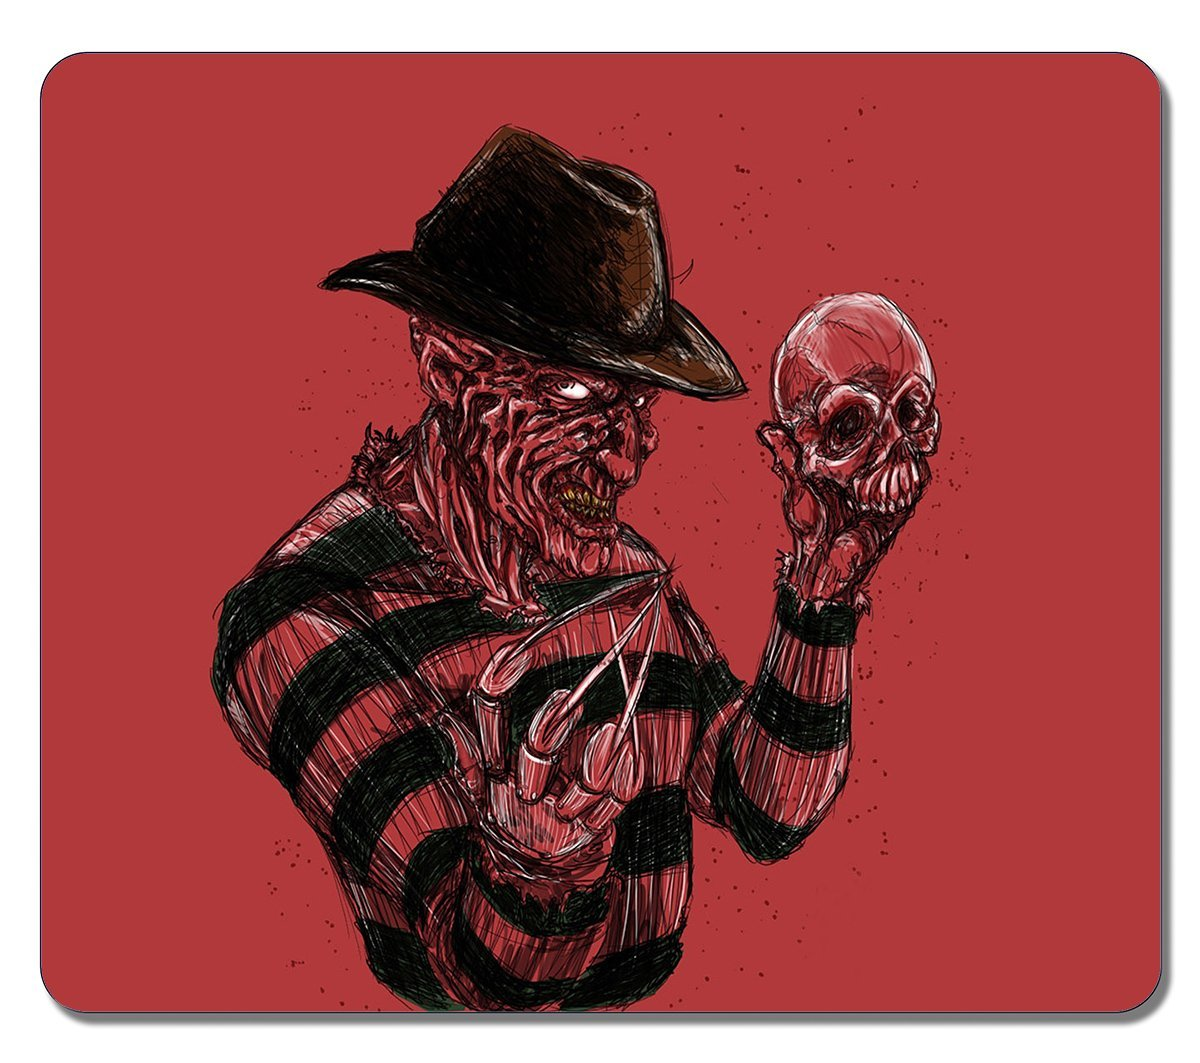 Art Mouse Pads Customized Freddy Krueger A Nightmare On Elm Street High Quality Eco Friendly Mouse Mat Cute Gaming Mouse pad